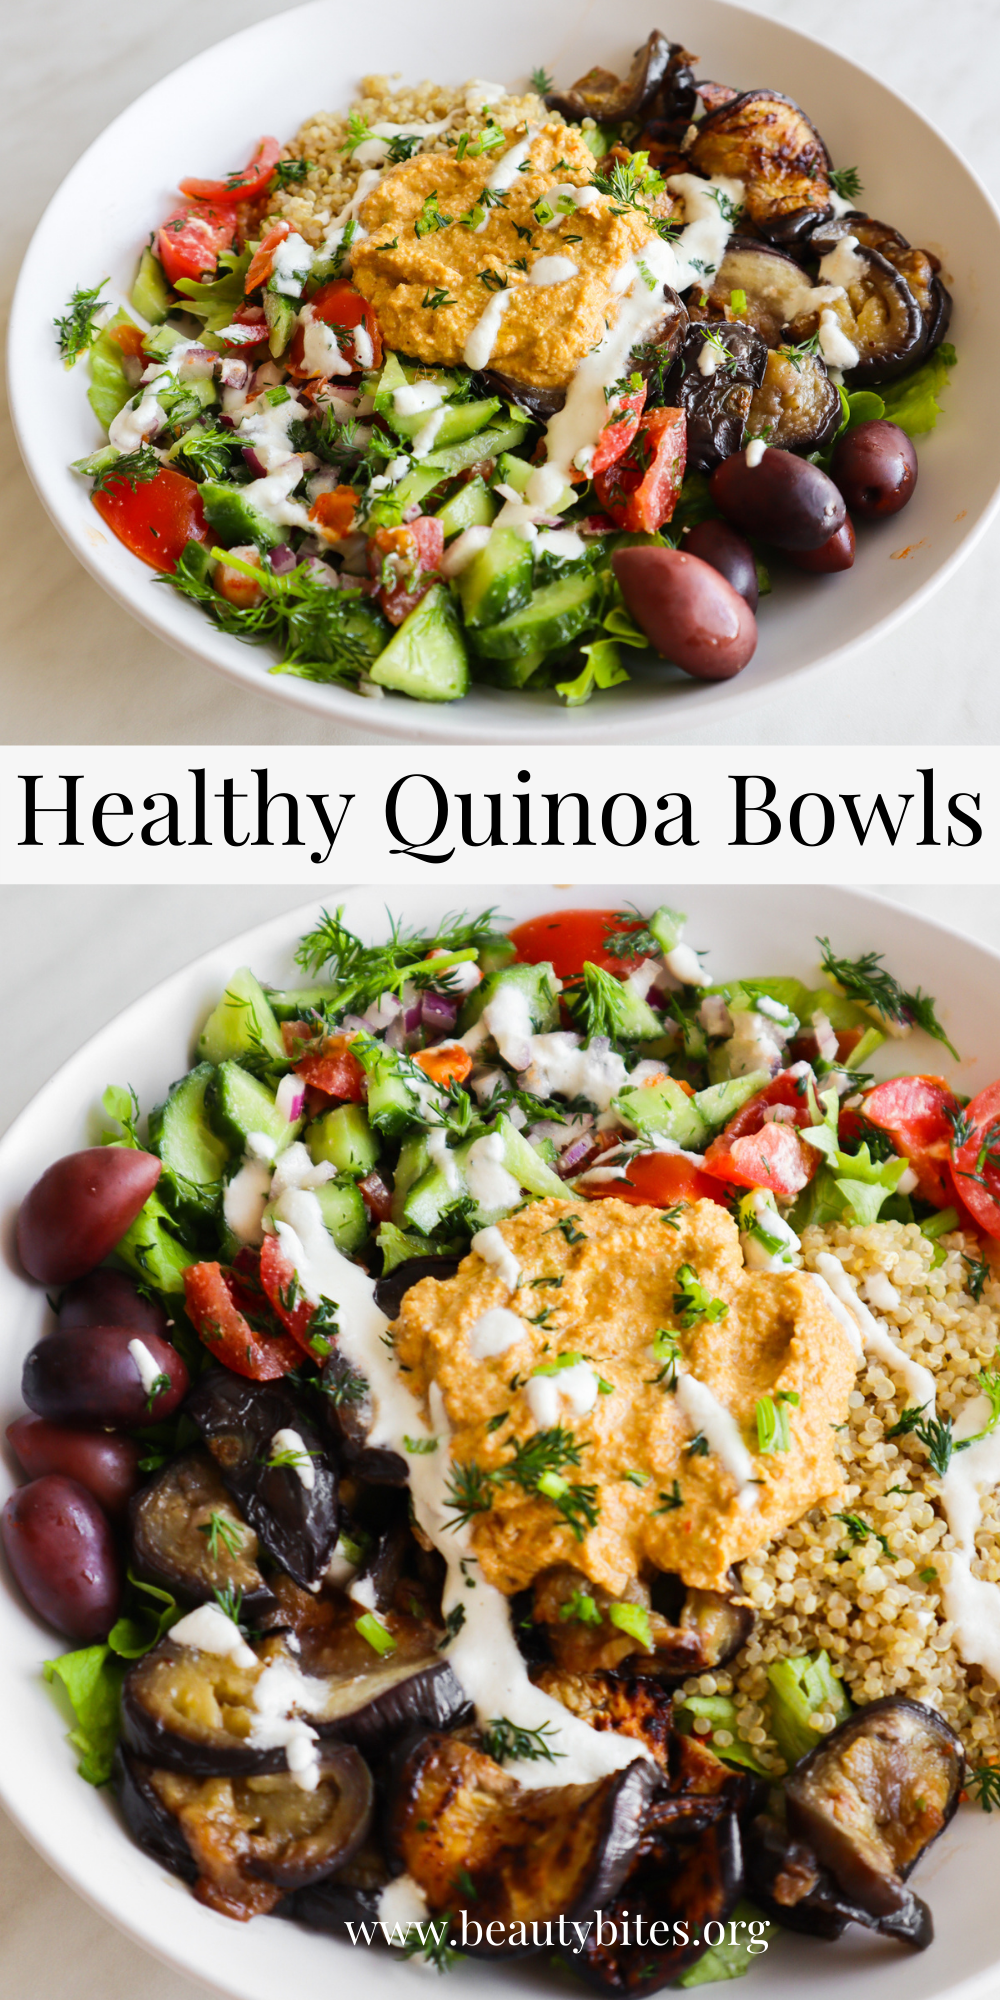 Healthy quinoa bowls - a tasty, easy and healthy vegan dinner idea that you need to try if you're looking for easy quinoa recipes! These healthy power bowls are filled with a roasted vegetable sauce, quinoa, a healthy salad, and are nourishing and delicious! Perfect clean eating recipe to meal prep for the week!